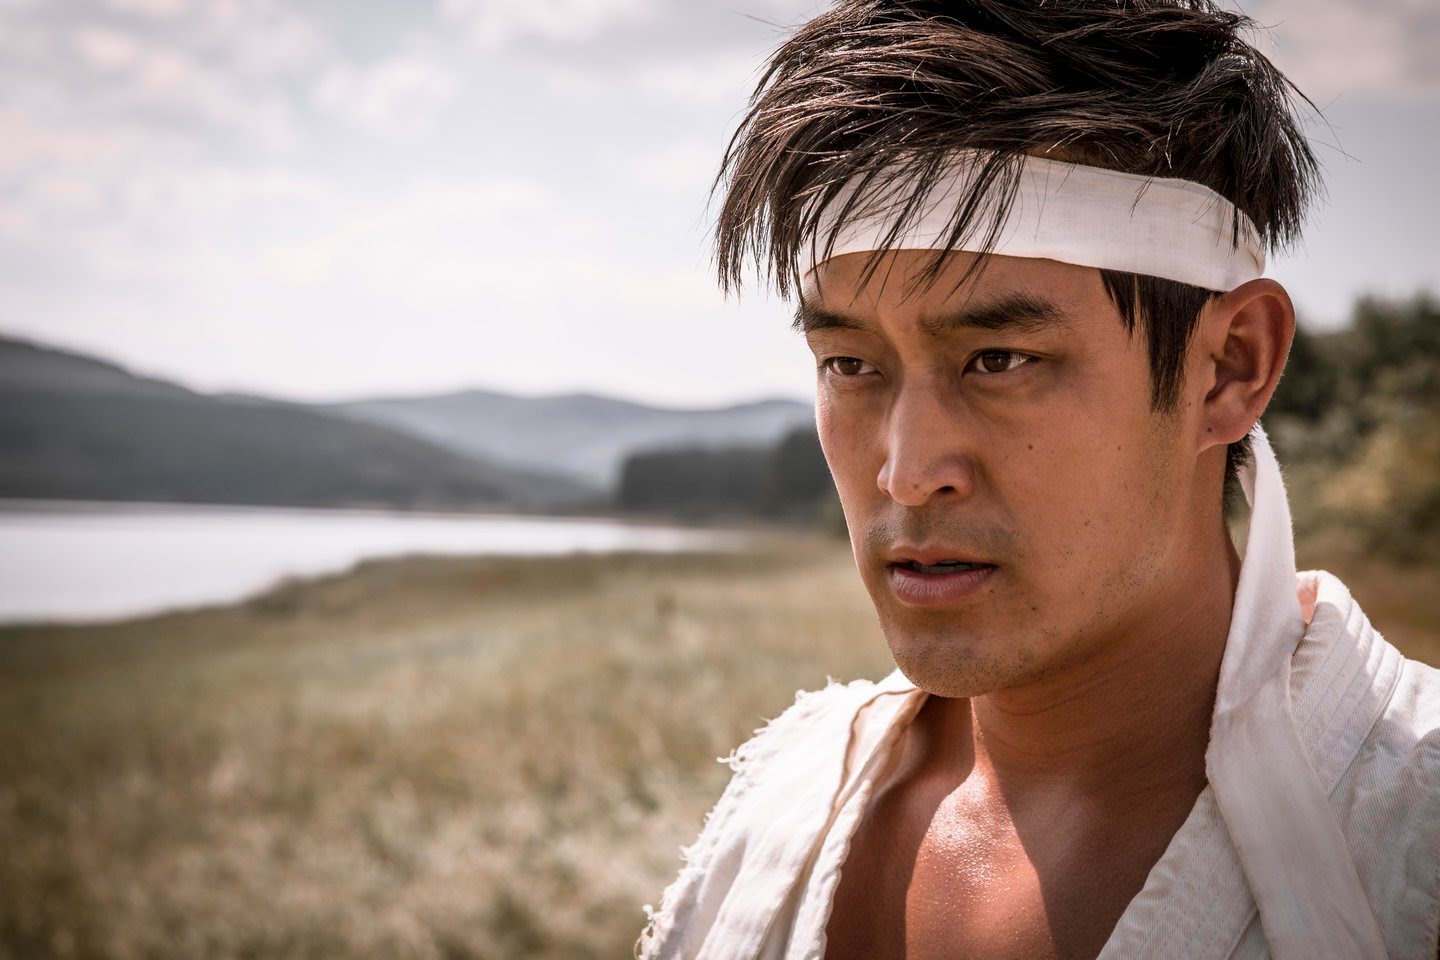 L'attore Mike Moh